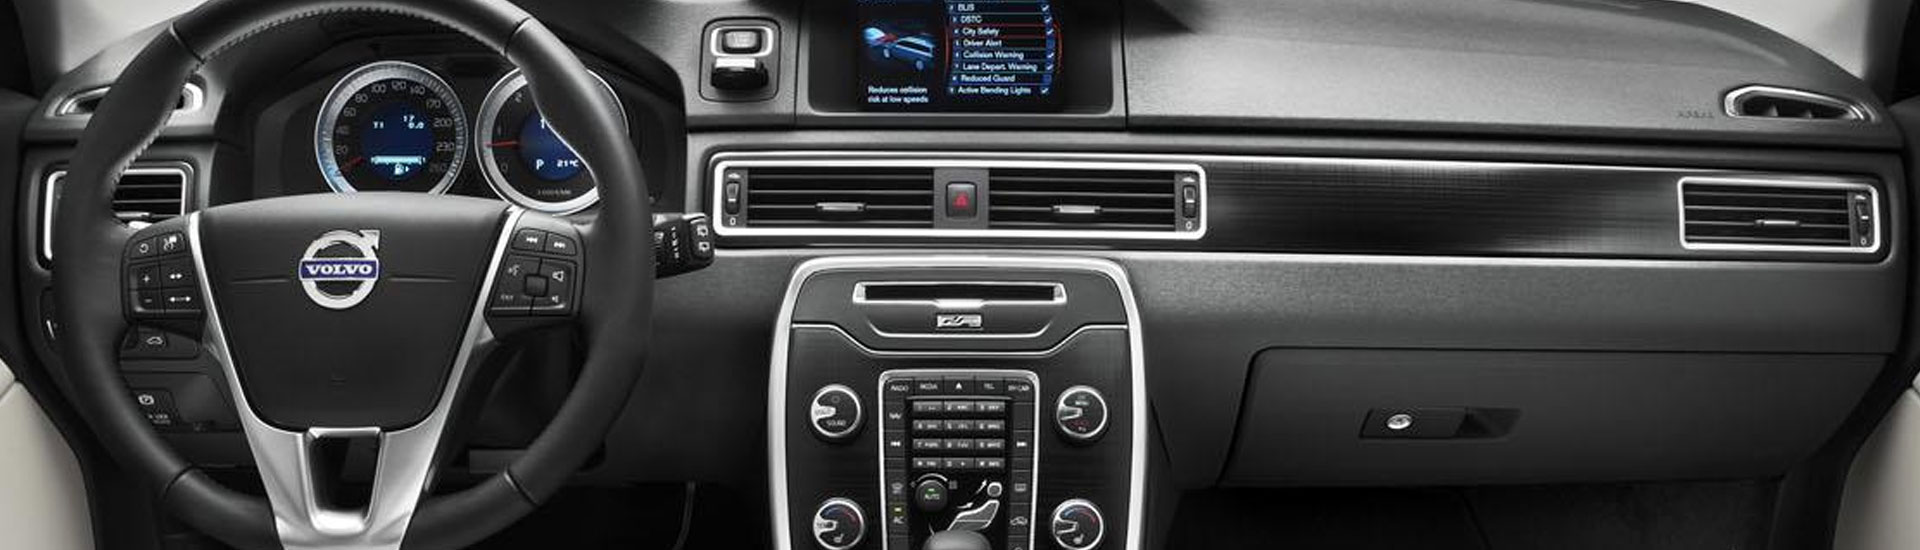 genuine shop exterior styling kit accessories accessory vcc volvo